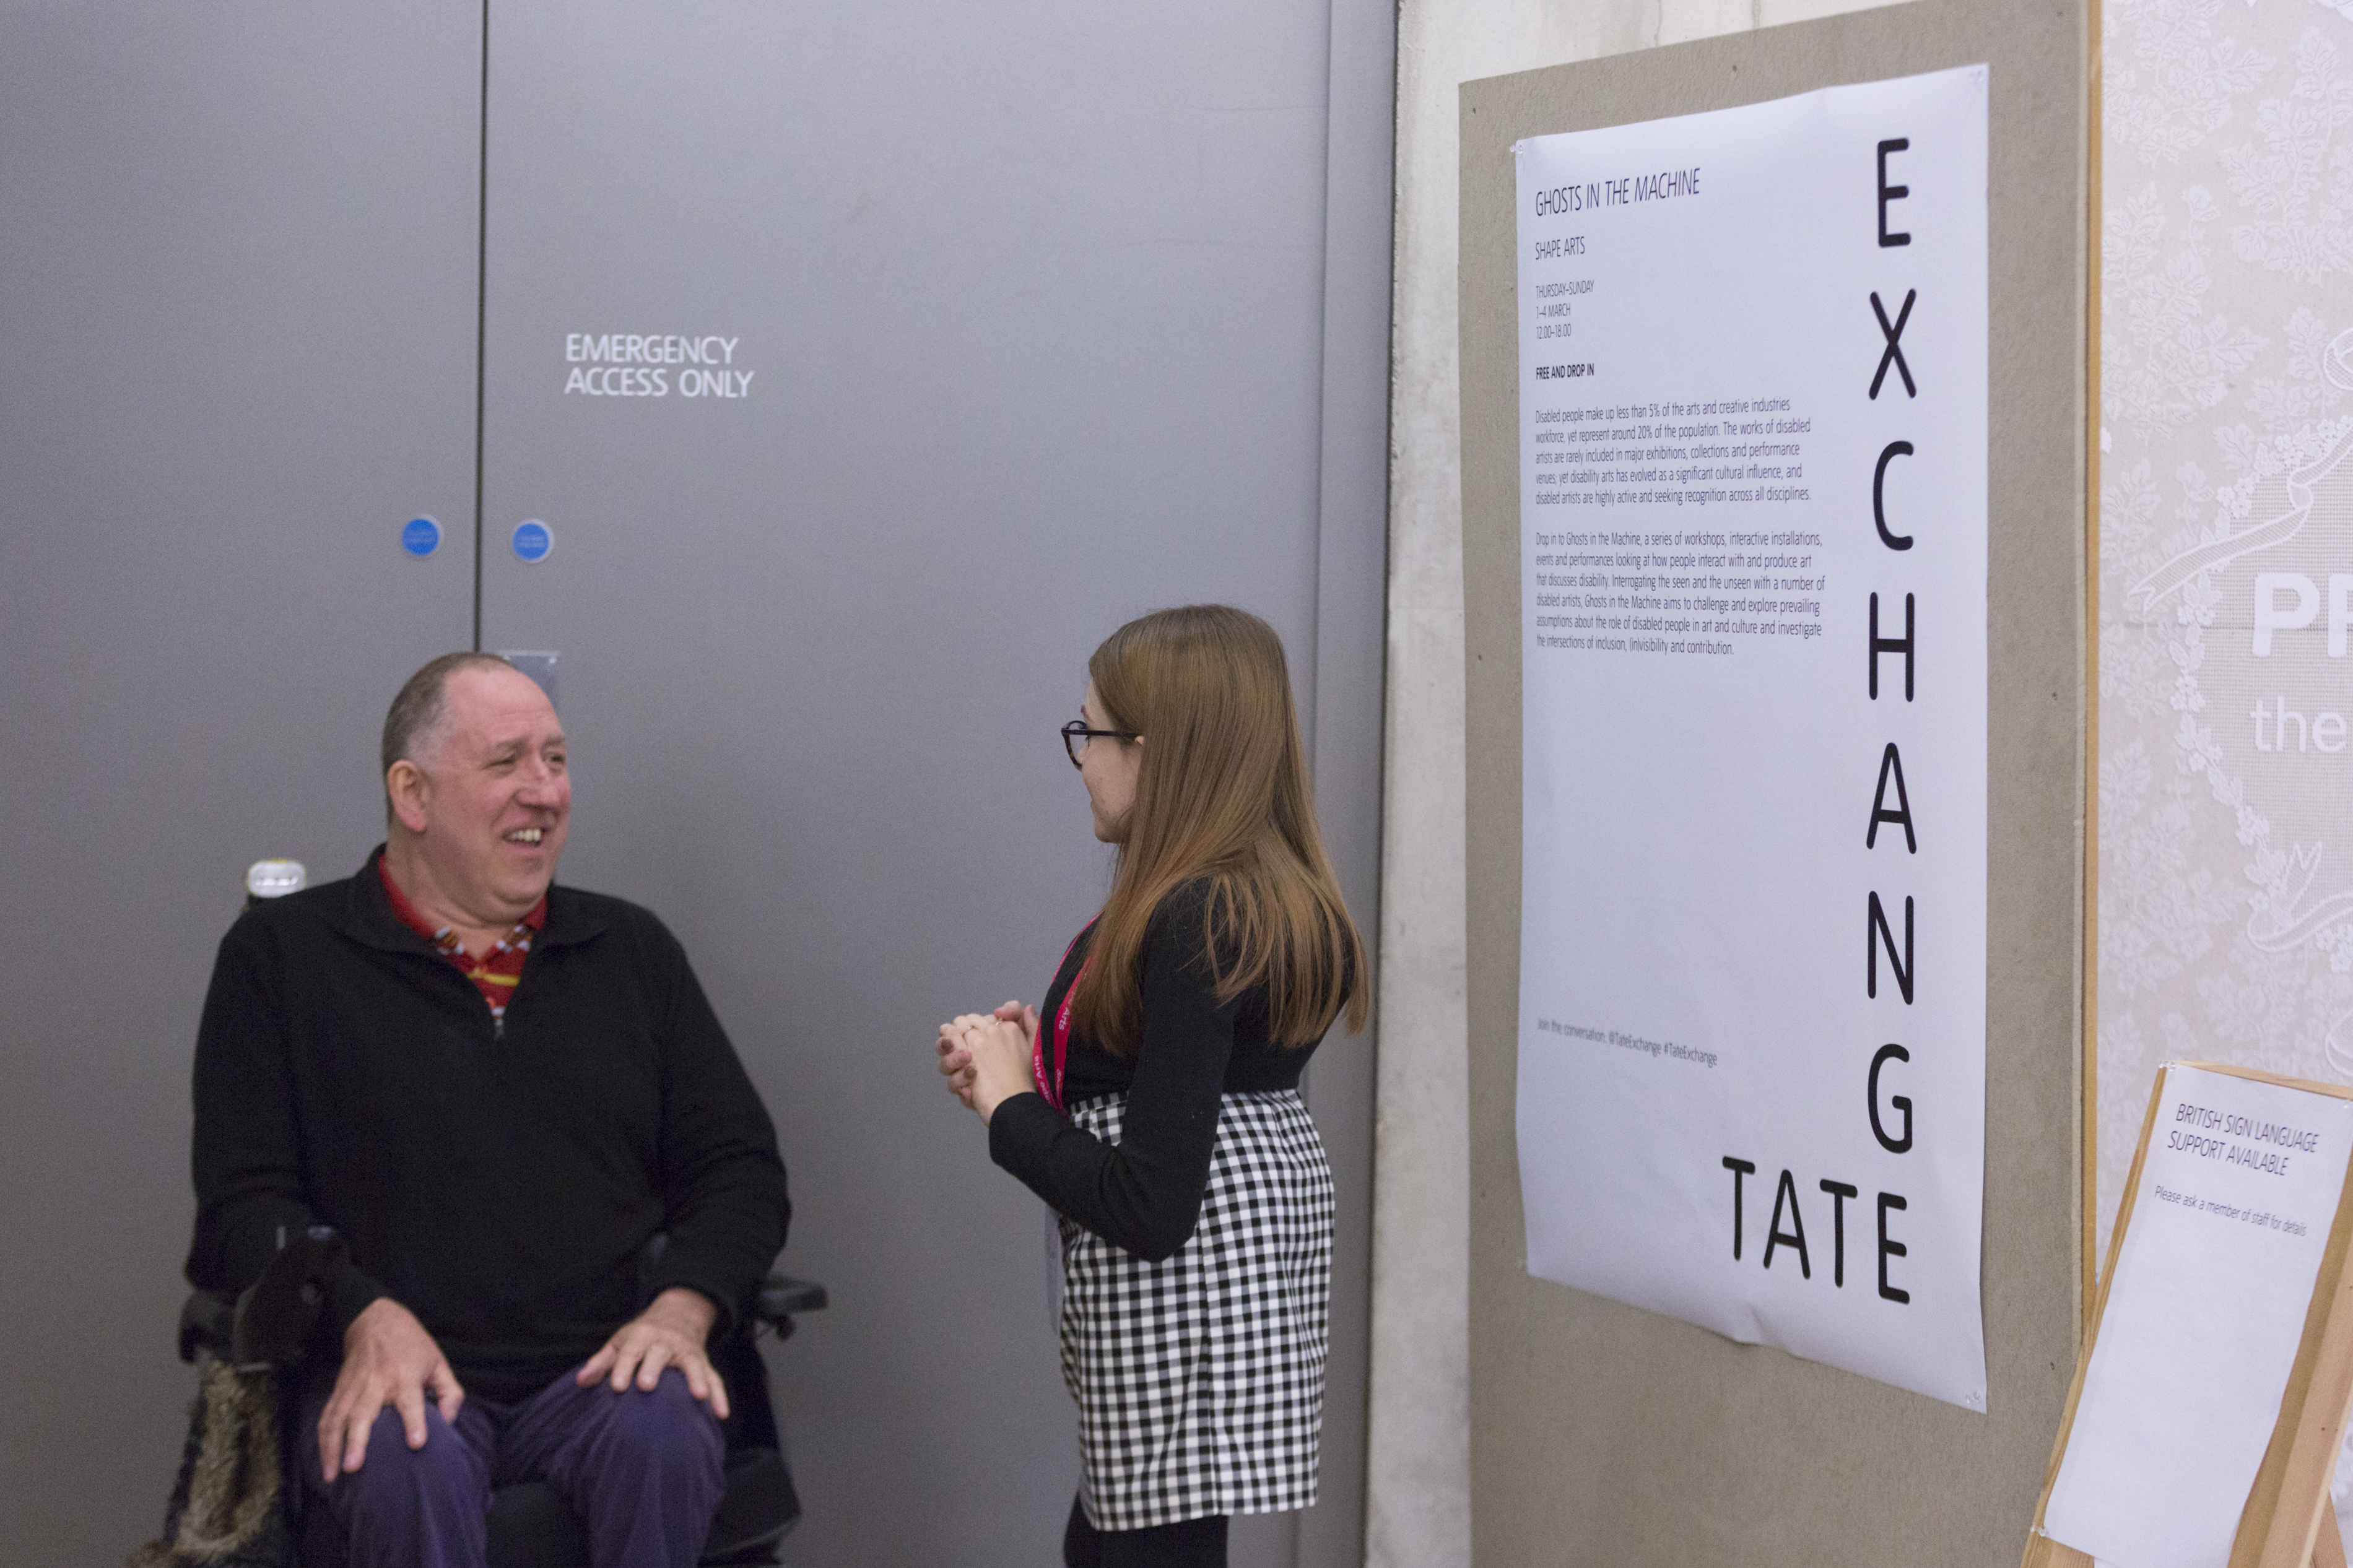 a man sits in a wheelchair to the left of the frame talking to becky dann who is wearing glasses with a black top and skirt. standing in front of a sign that says 'tate exchange'